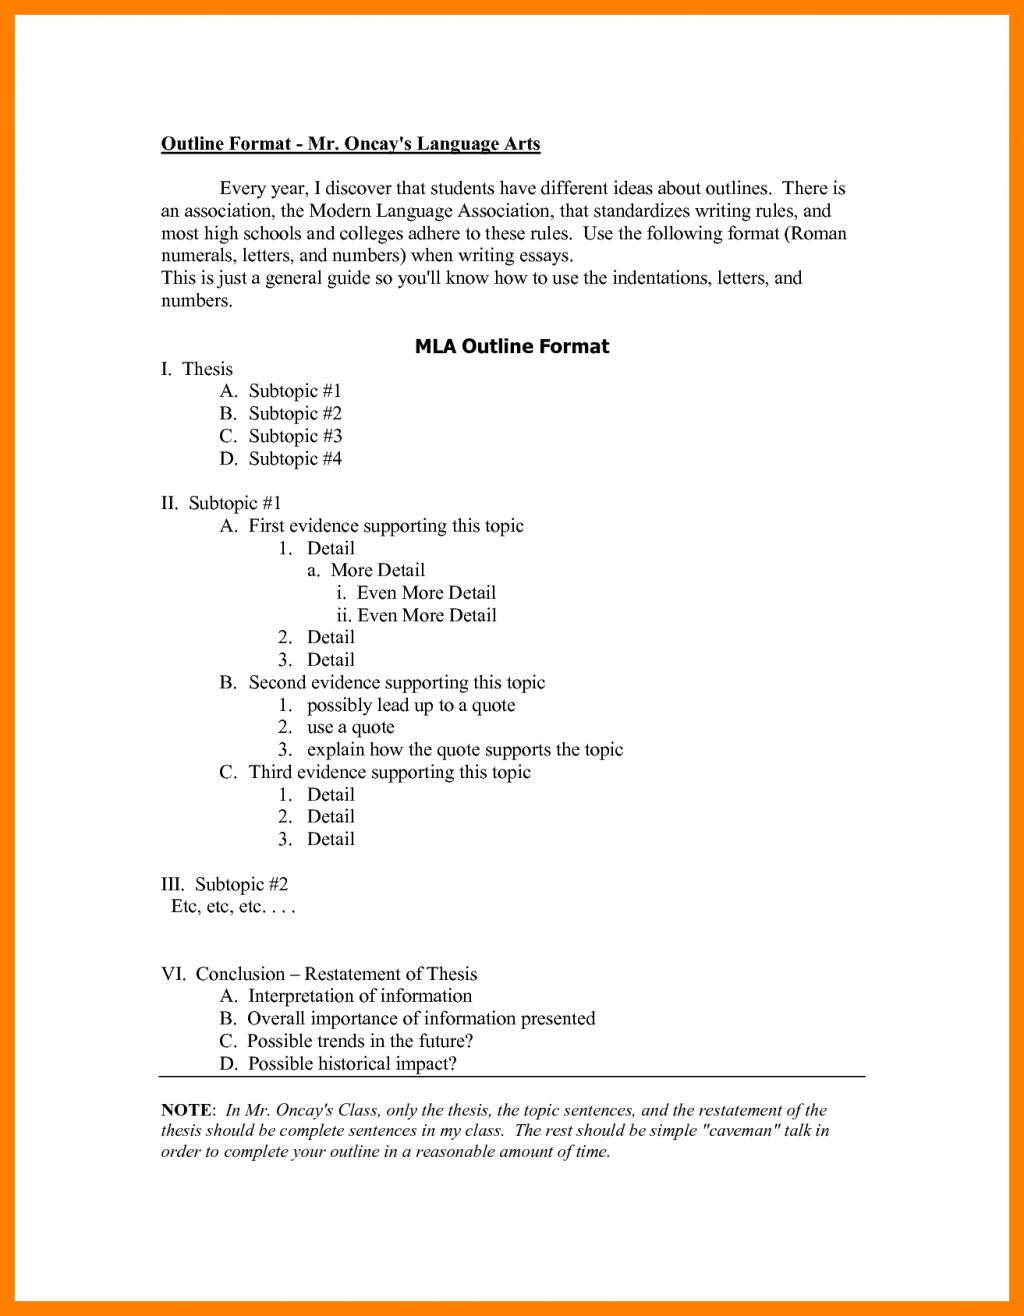 018 Research Paper High School Outline Format Mla Example Of Examples Stirring On Dropouts Pdf Seniors Large